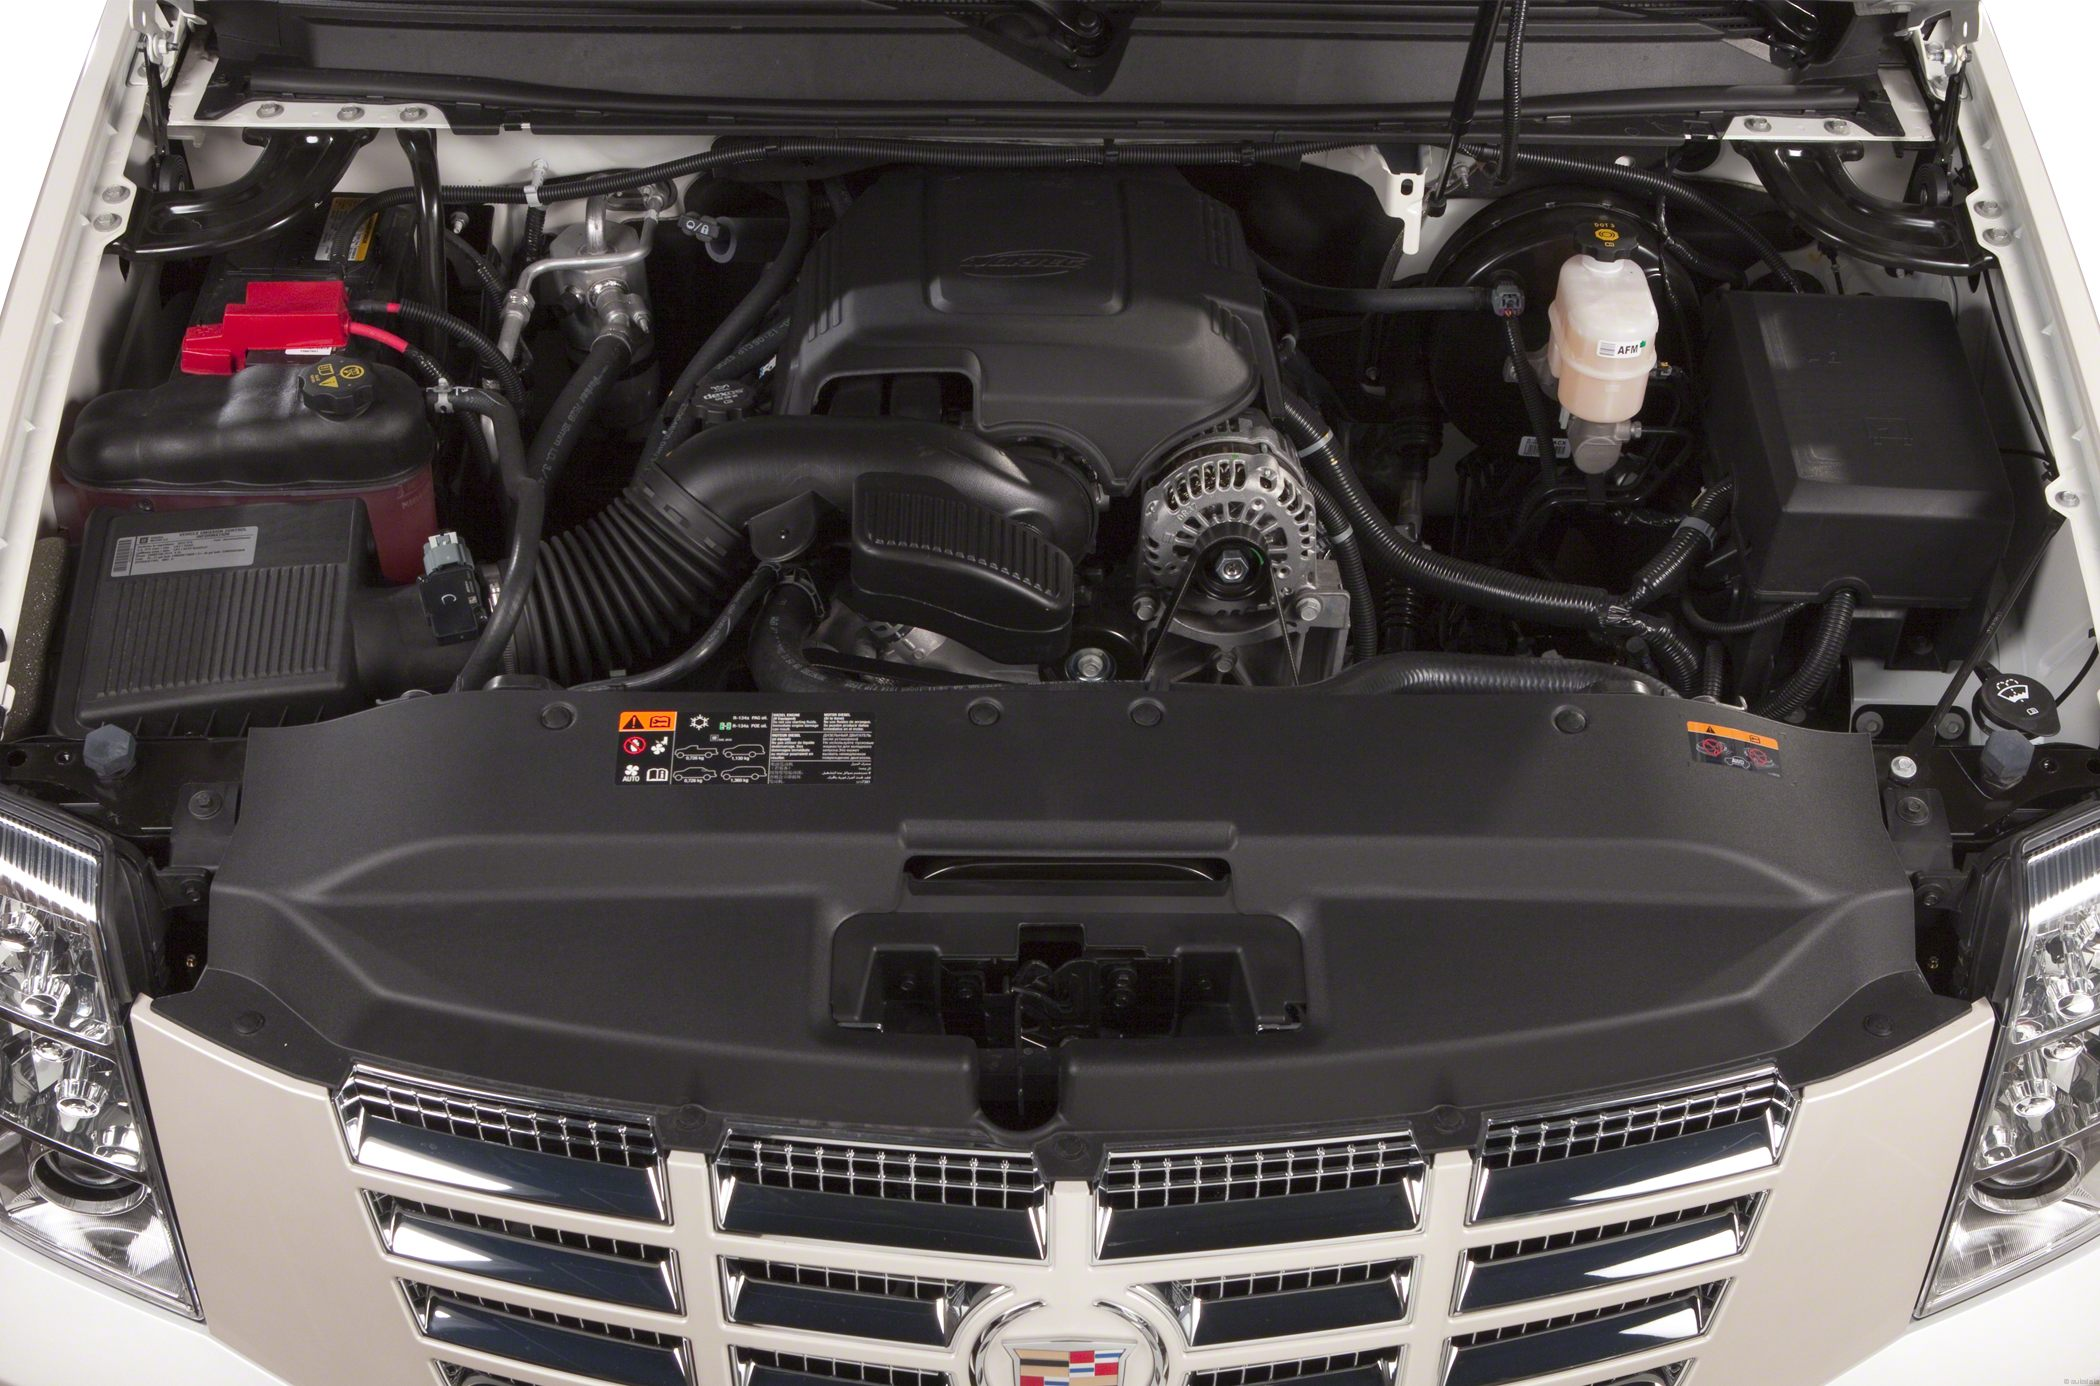 Cadillac Escalade EXT engine #4